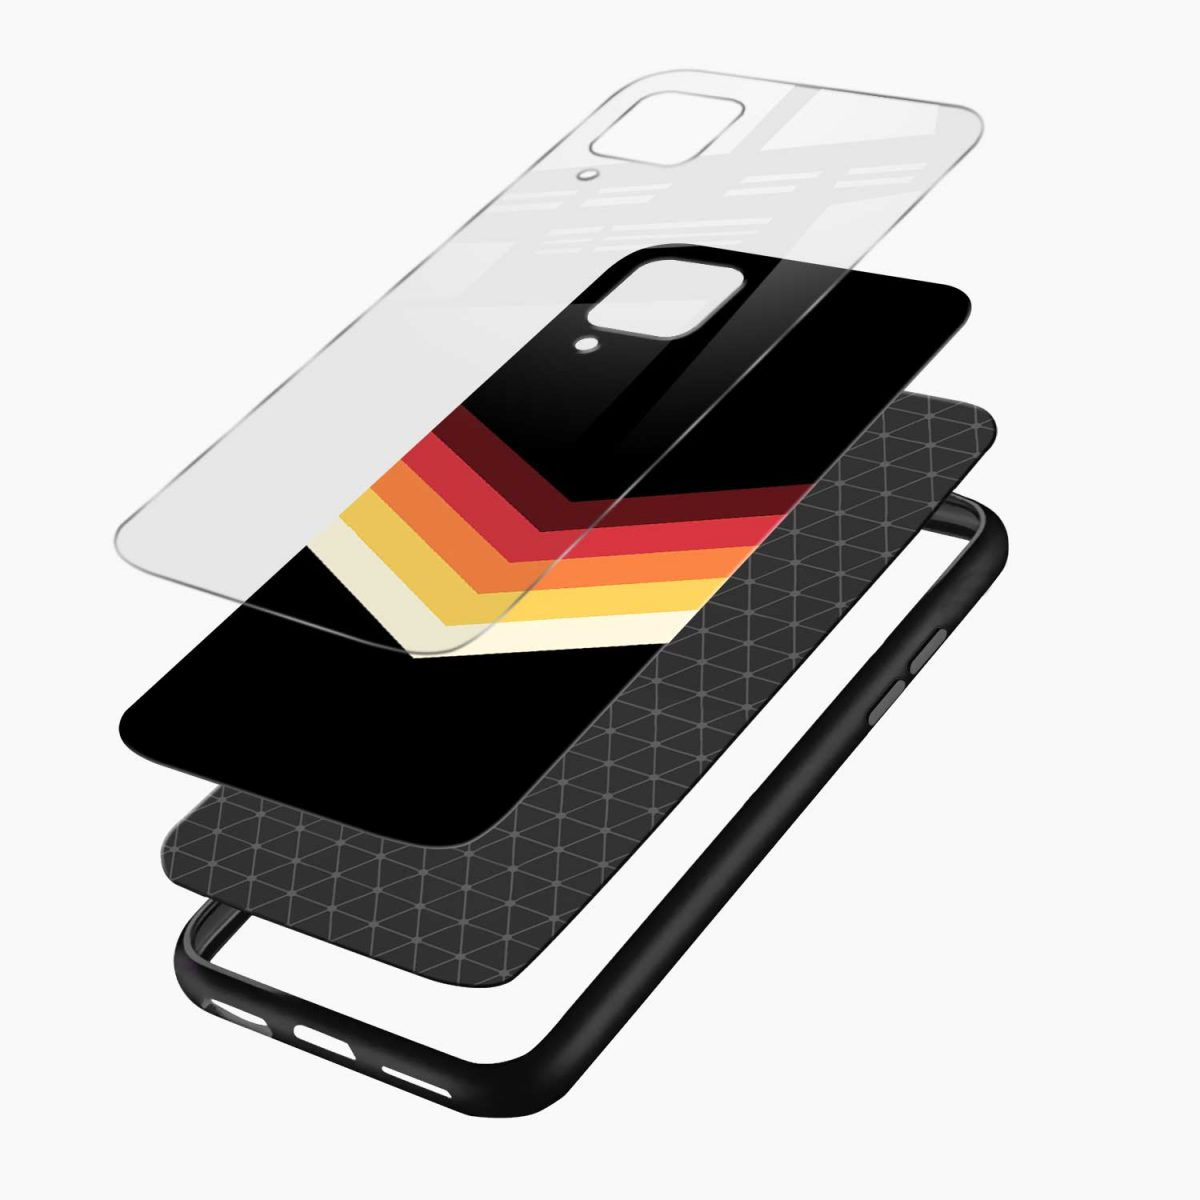 rewind strips pattern layers view samsung galaxy a12 back cover